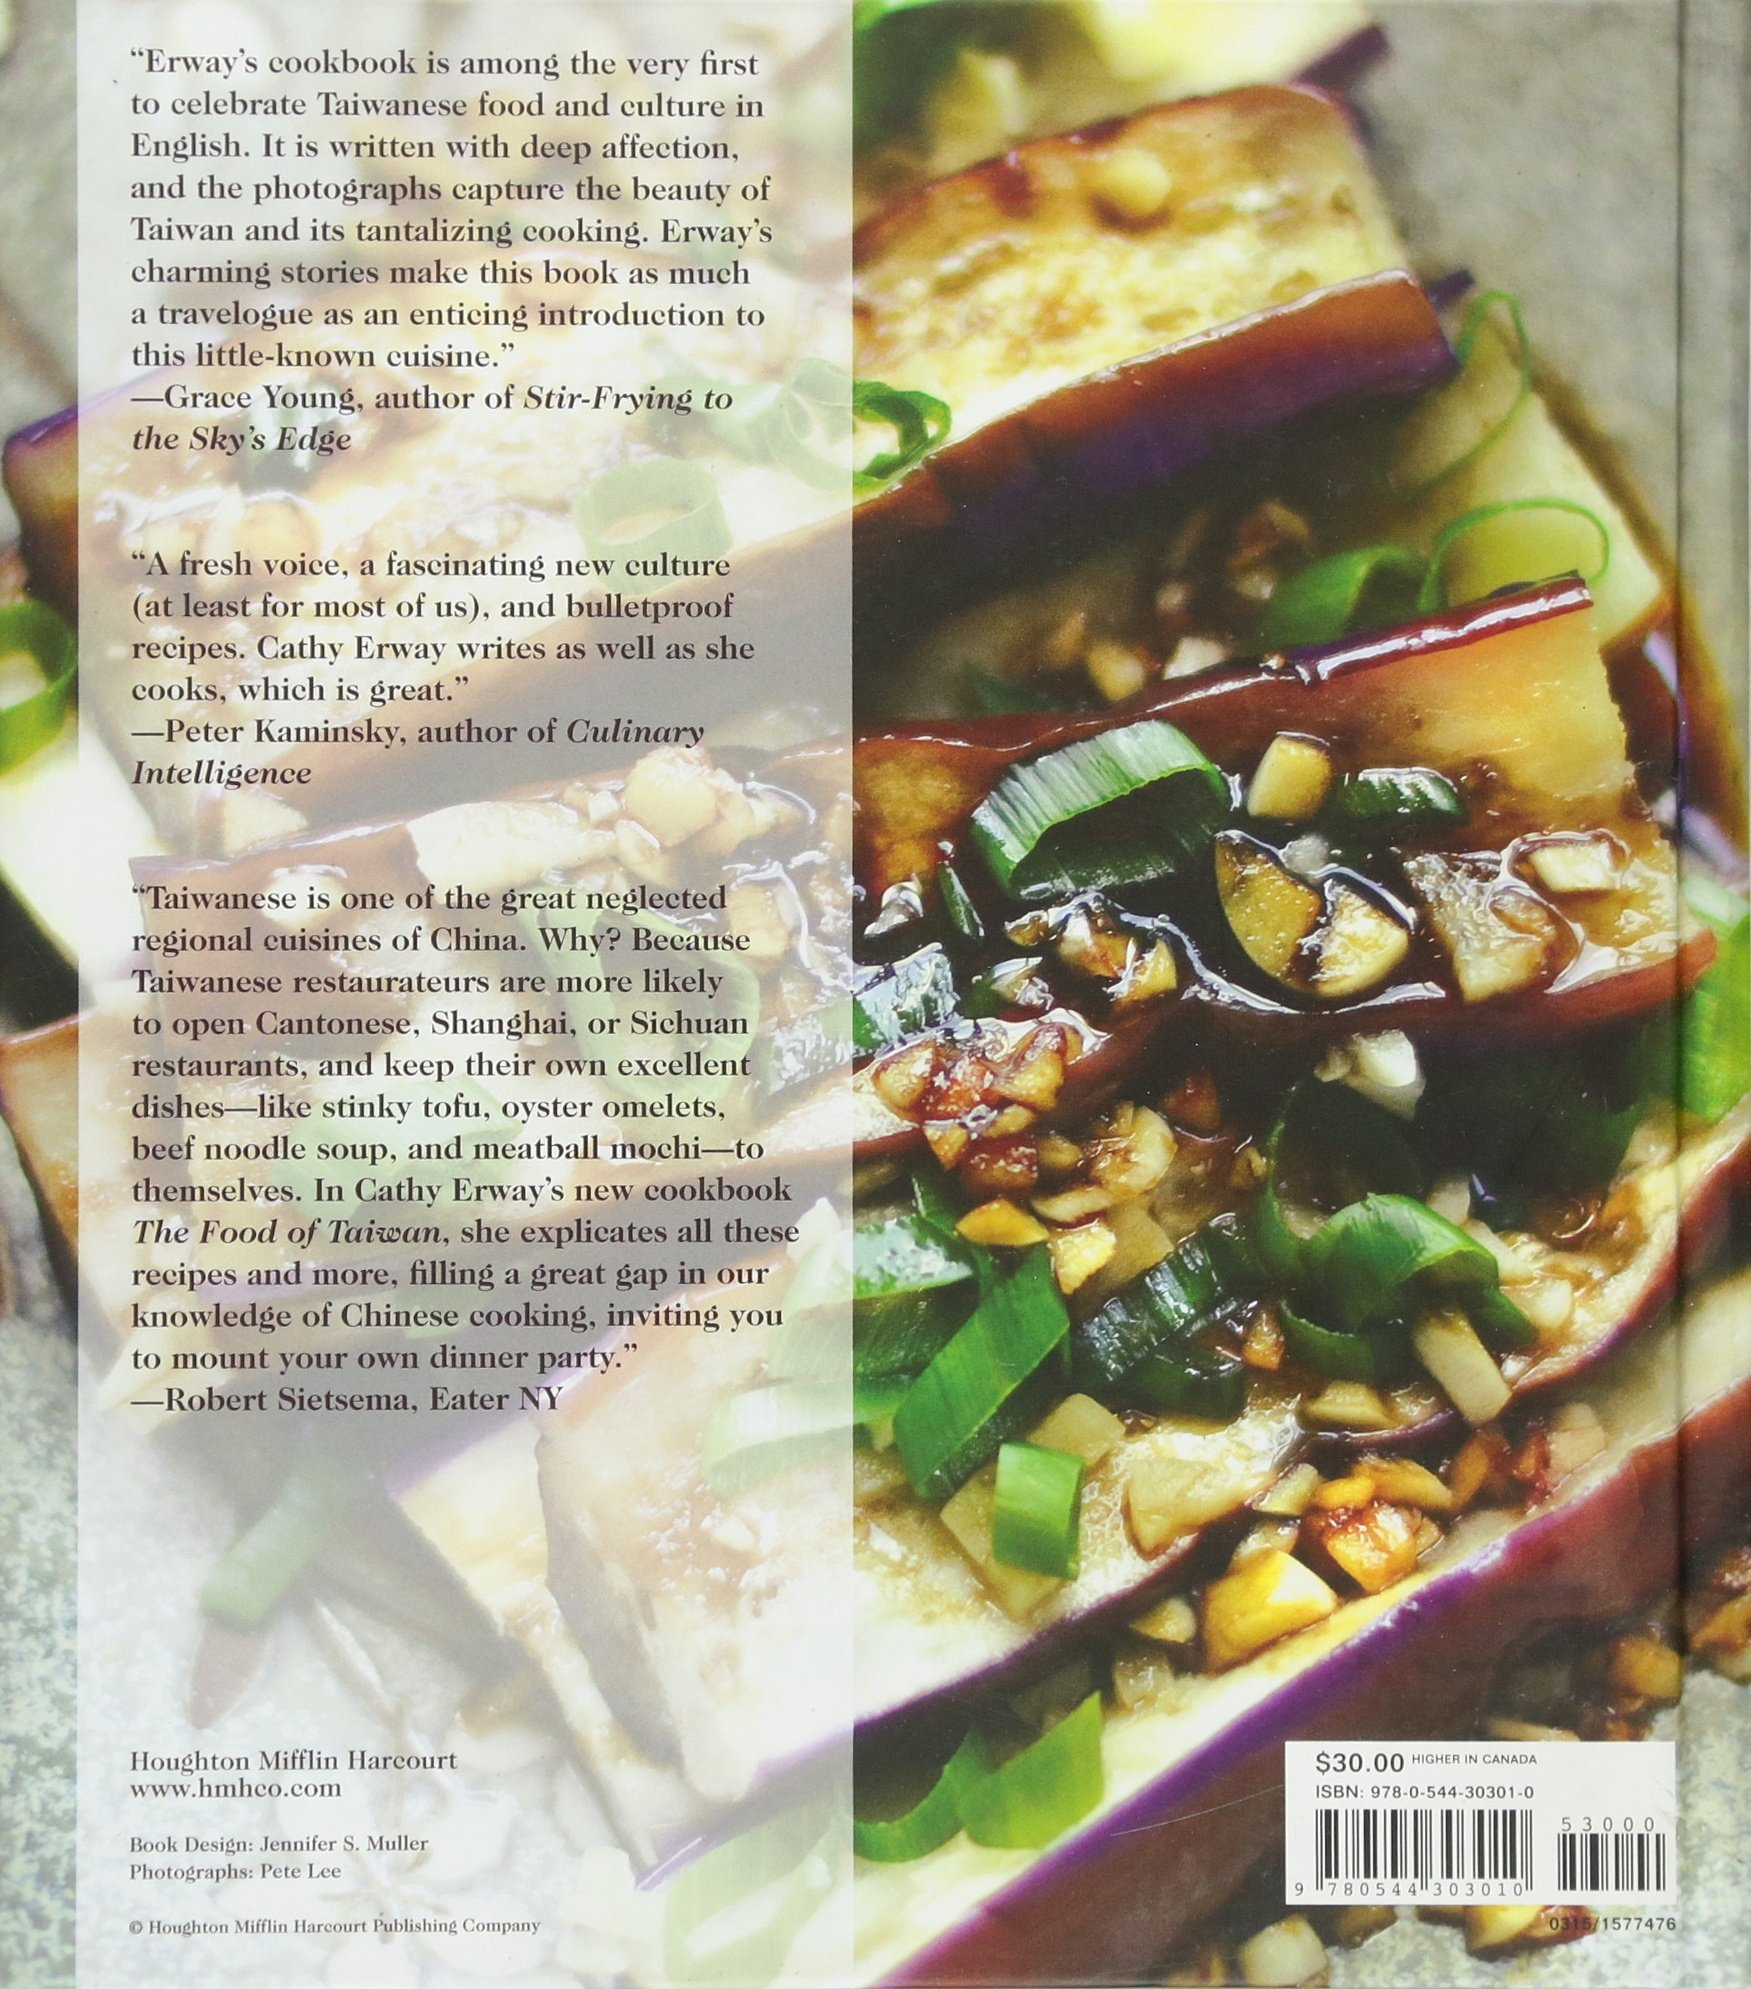 The food of taiwan recipes from the beautiful island cathy erway the food of taiwan recipes from the beautiful island cathy erway 9780544303010 amazon books forumfinder Choice Image